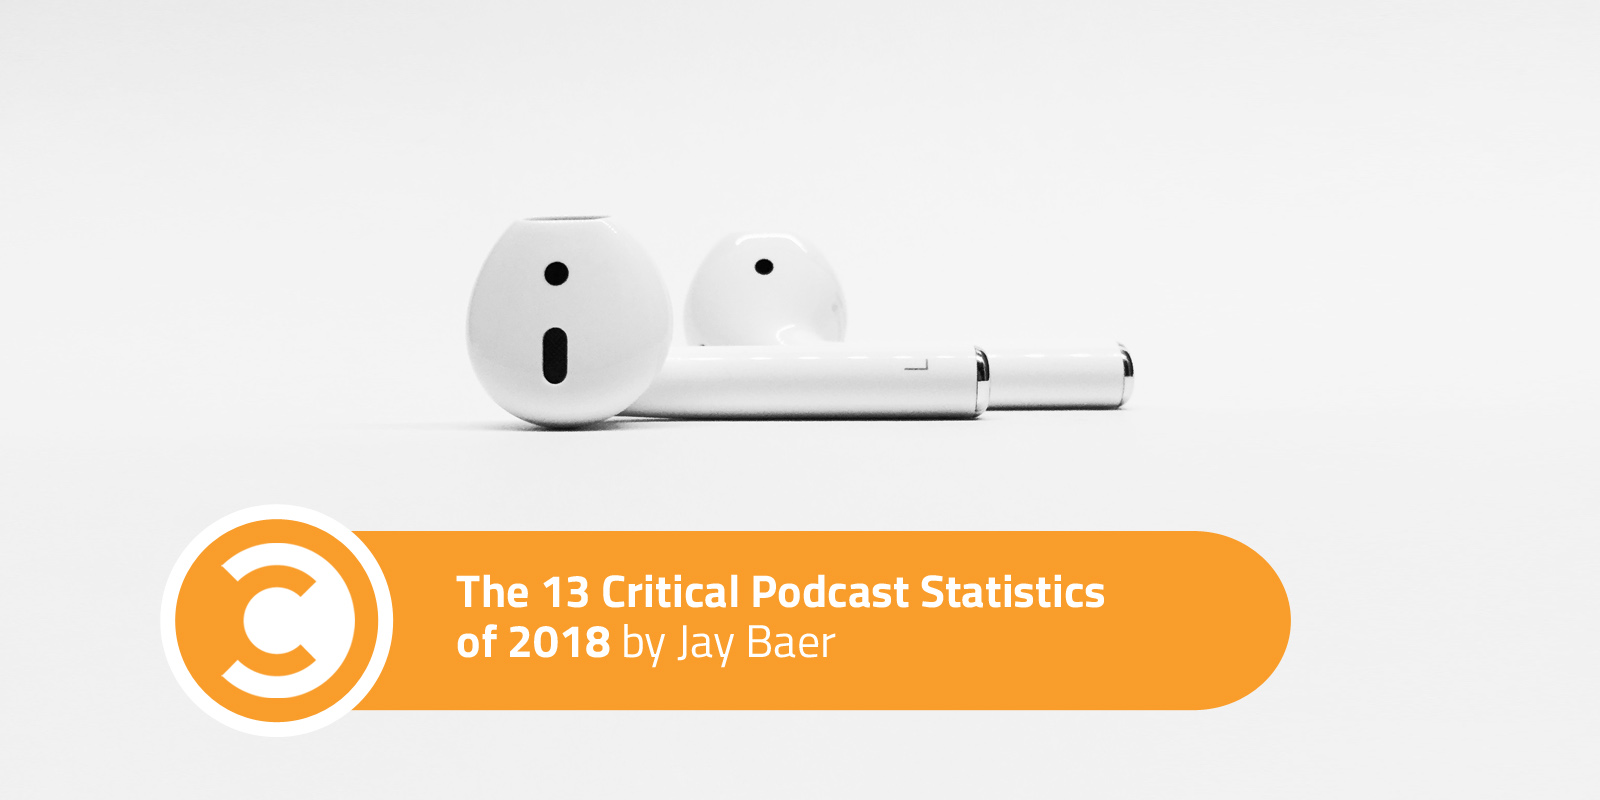 The 13 Critical Podcast Statistics of 2018